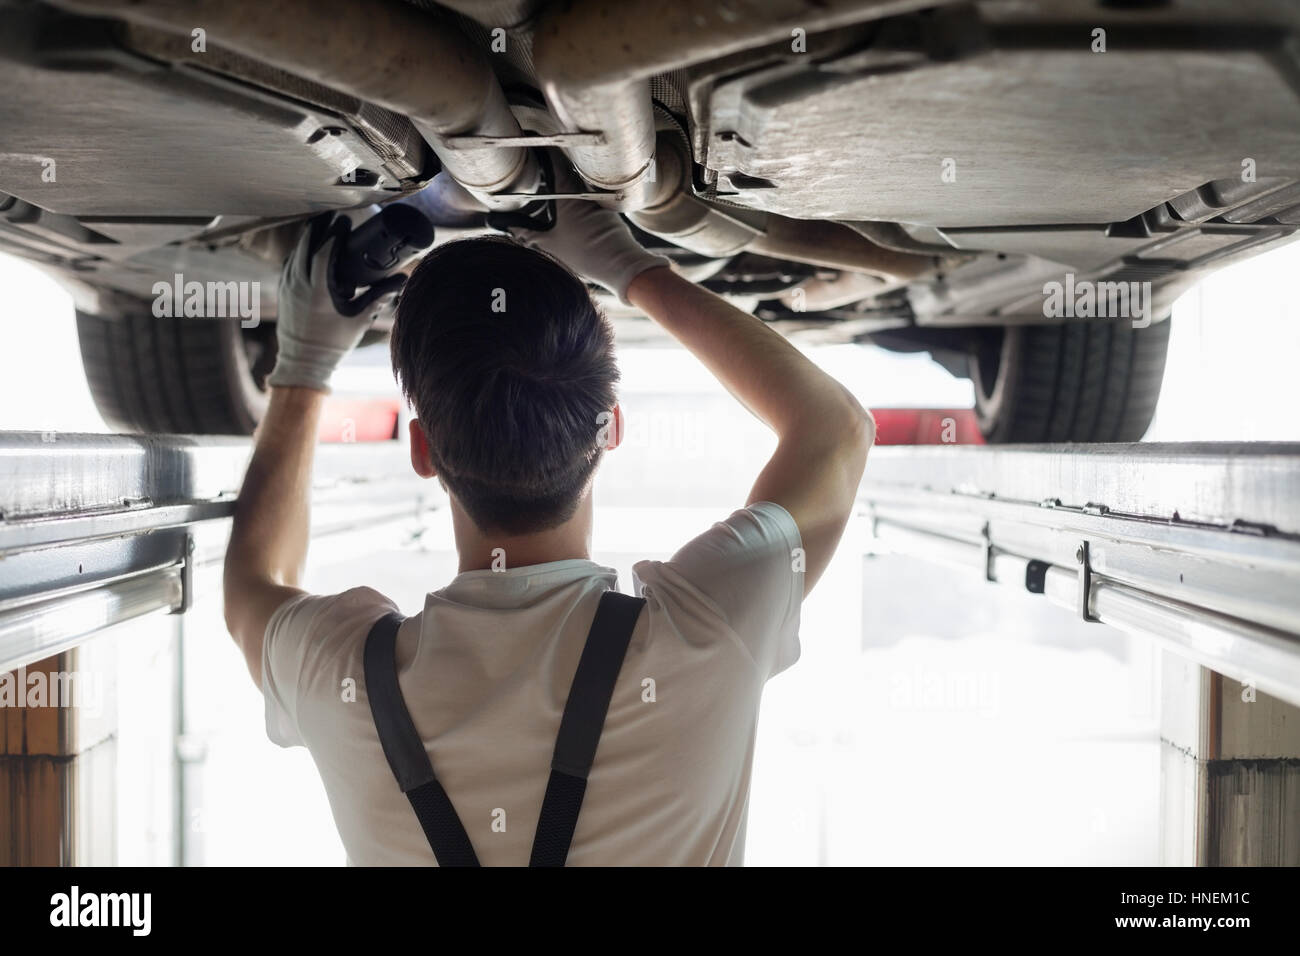 Rear view of automobile mechanic examining car in workshop - Stock Image